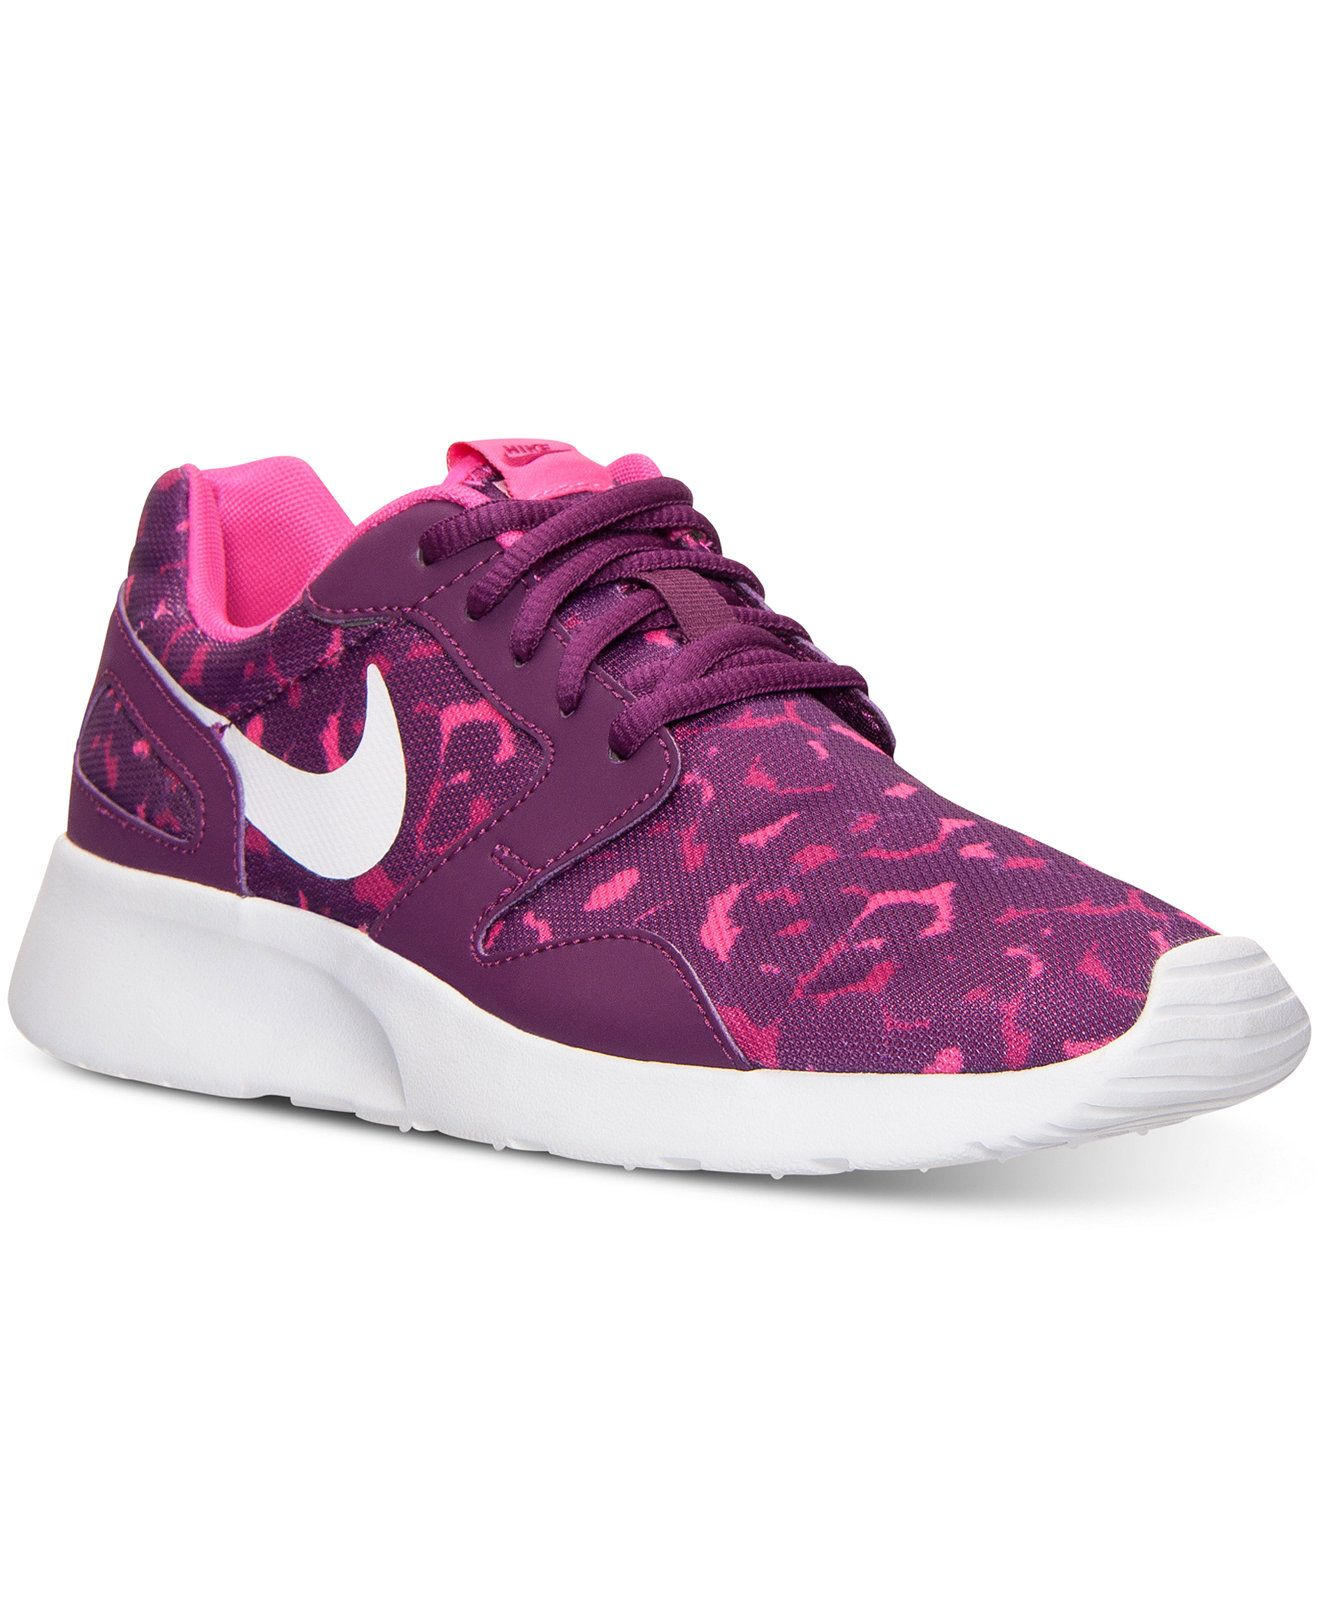 hot sale online b028c 923f0 Nike Women s Kaishi Print Casual Sneakers from Finish Line - Finish Line  Athletic Shoes - Shoes - Macy s